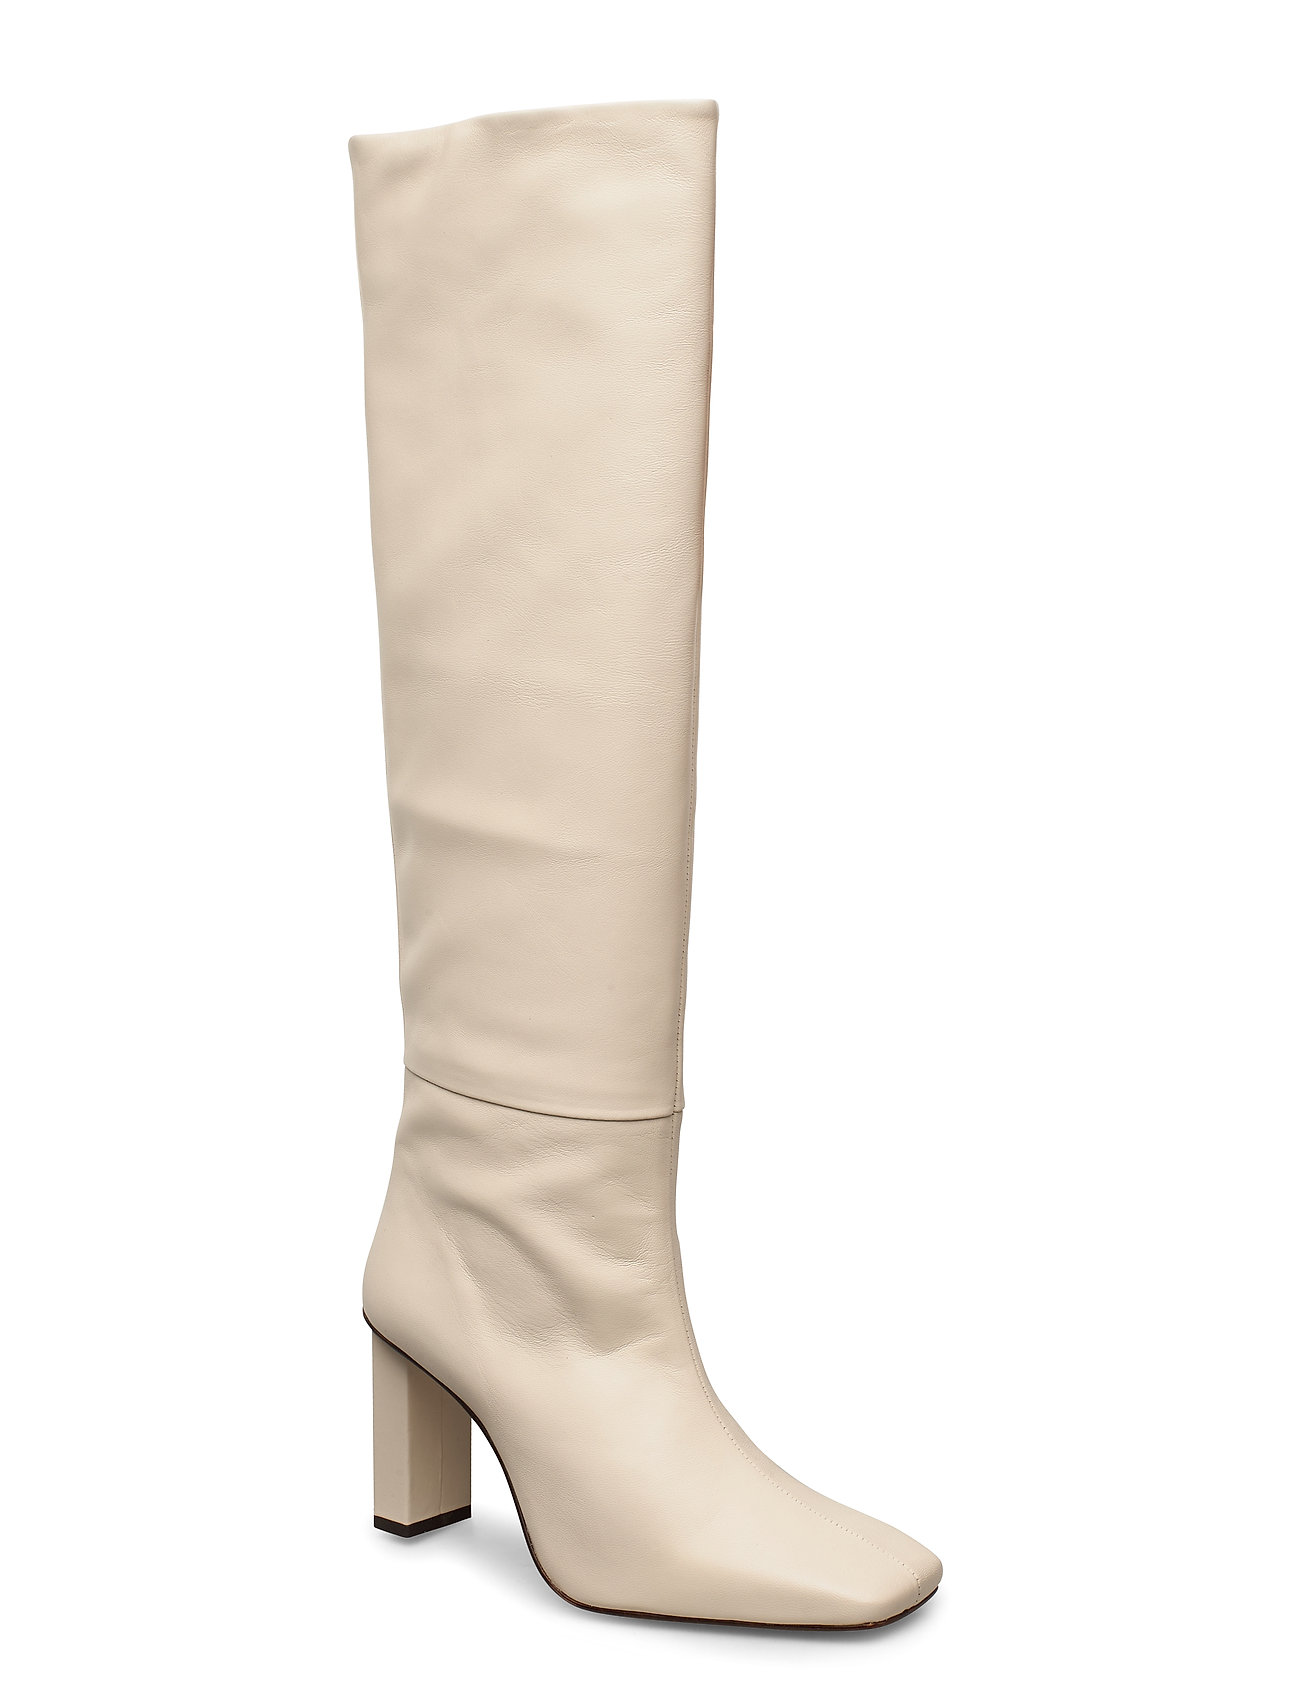 Image of Joan Le CarrÉ Tall Boot Lange Støvler Creme ANNY NORD (3423819243)